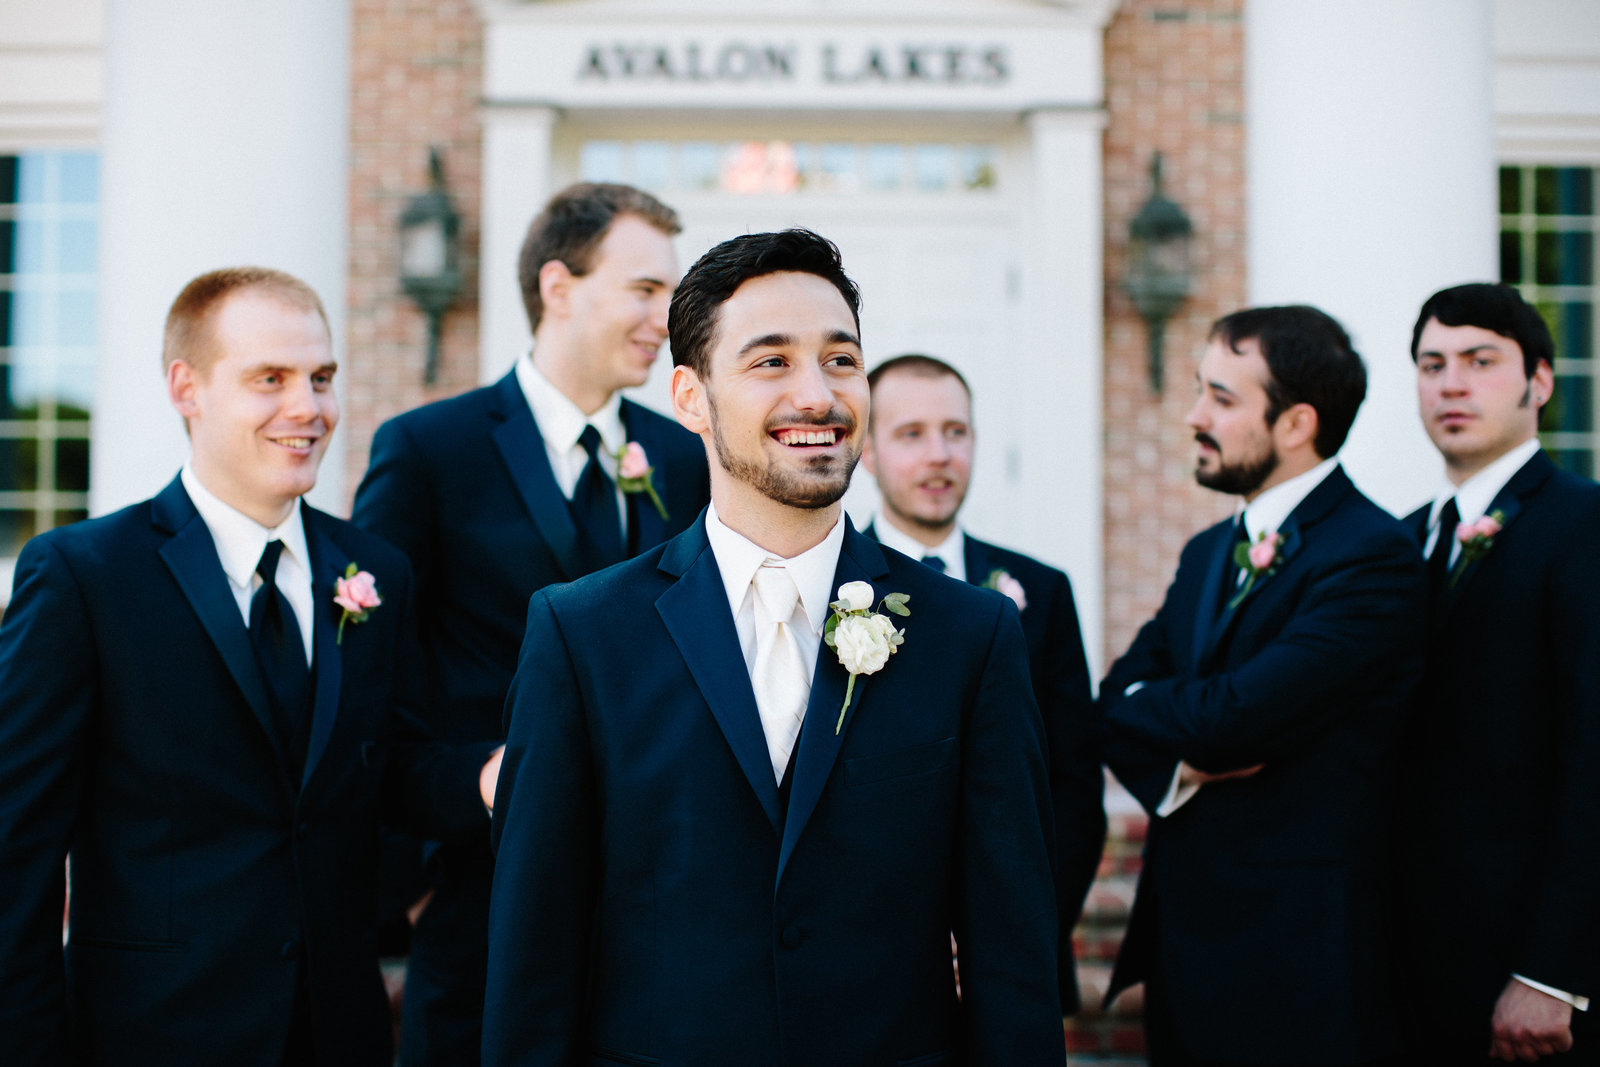 Youngstown Ohio wedding at the Avalon Golf and Country Club by Austin and Rachel Photography